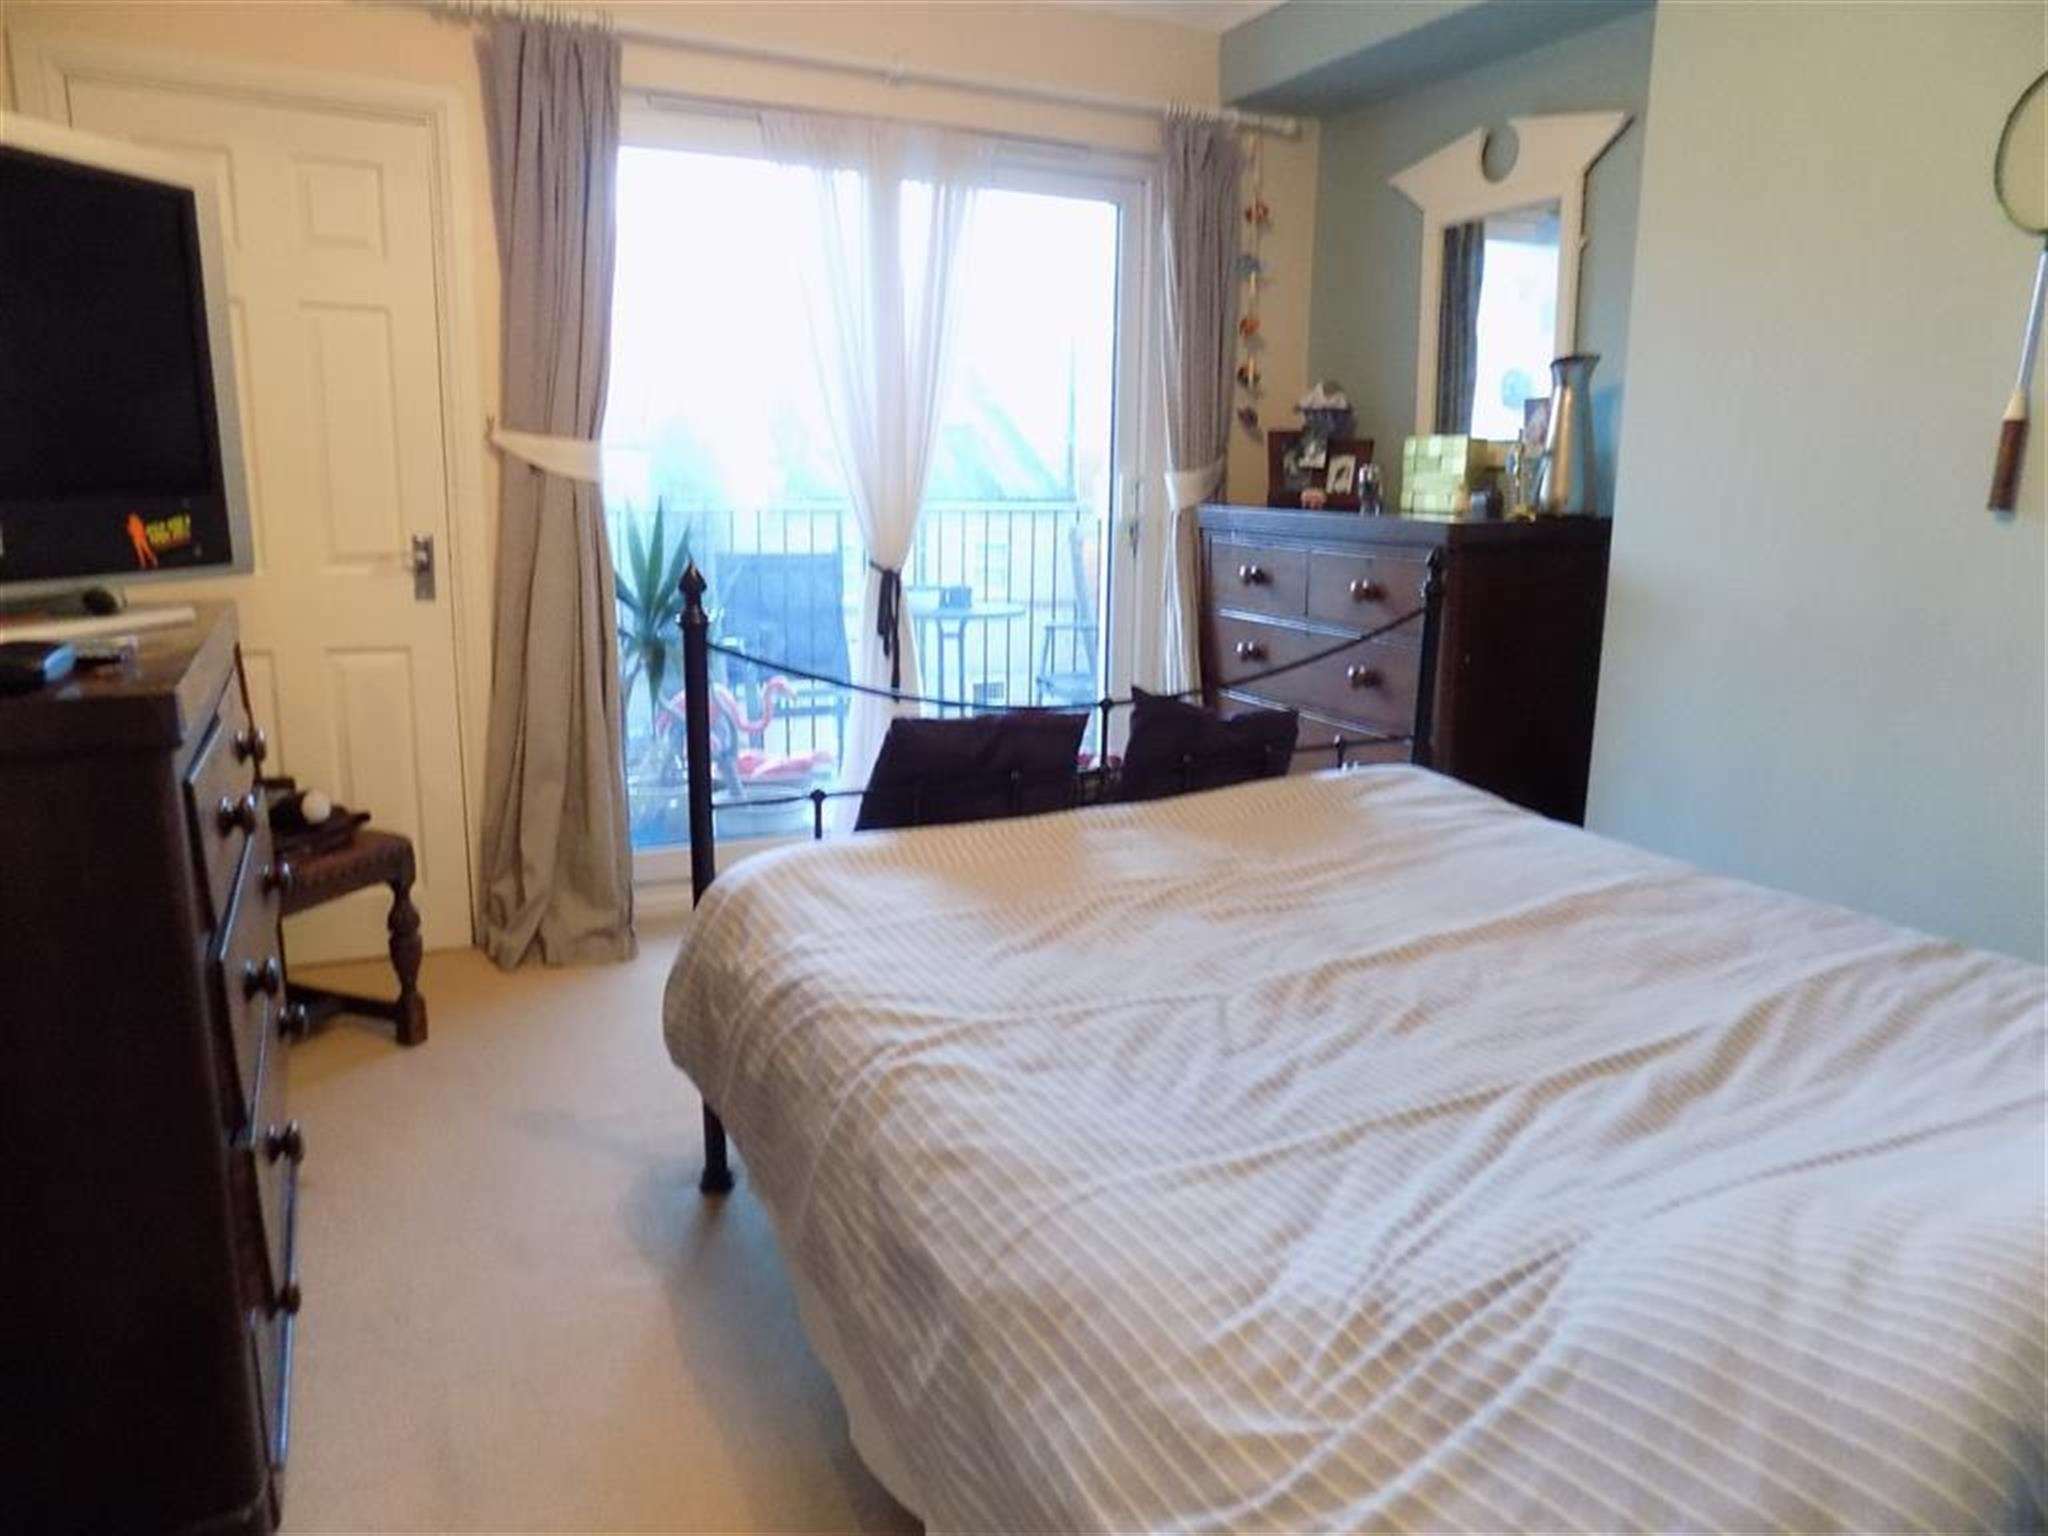 1 Bedroom Apartment To Rent Queens Gardens Eastbourne Bn21 3ef